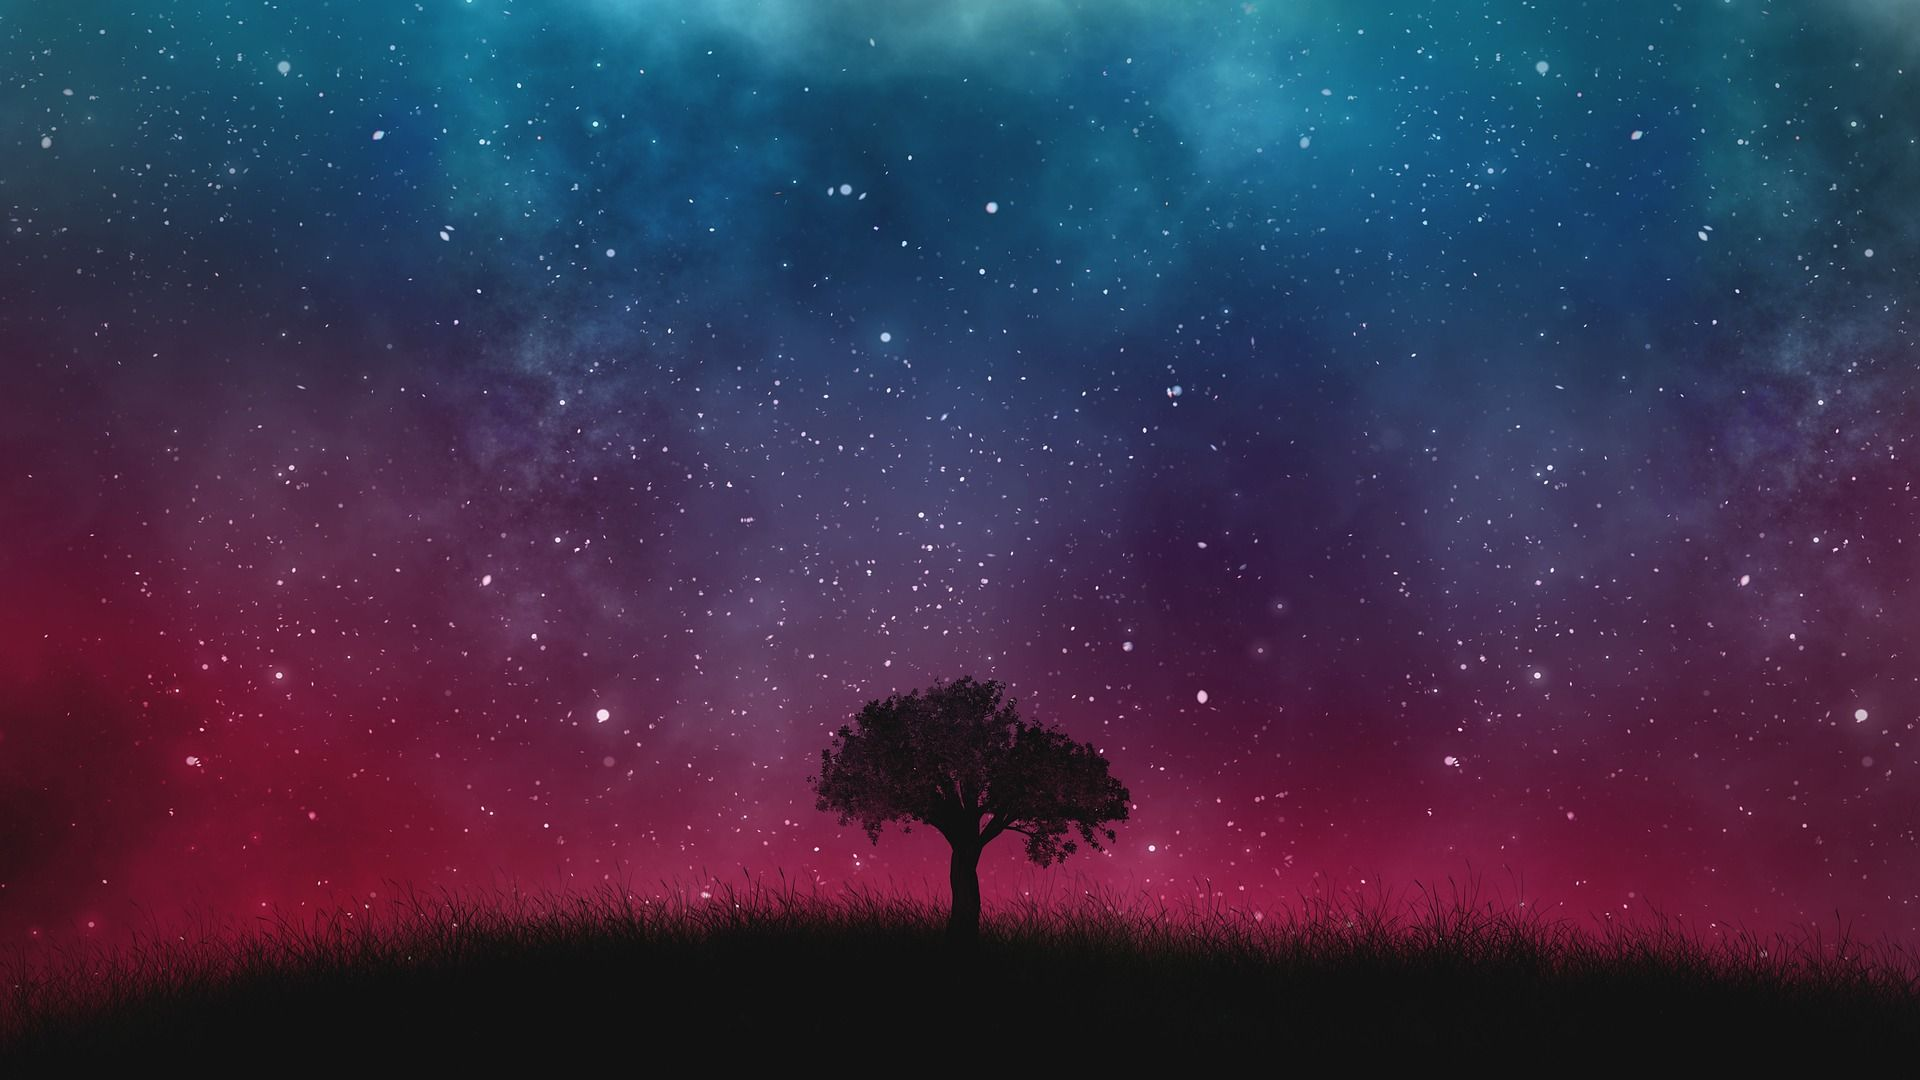 Tree with Milky Way galaxy in background.